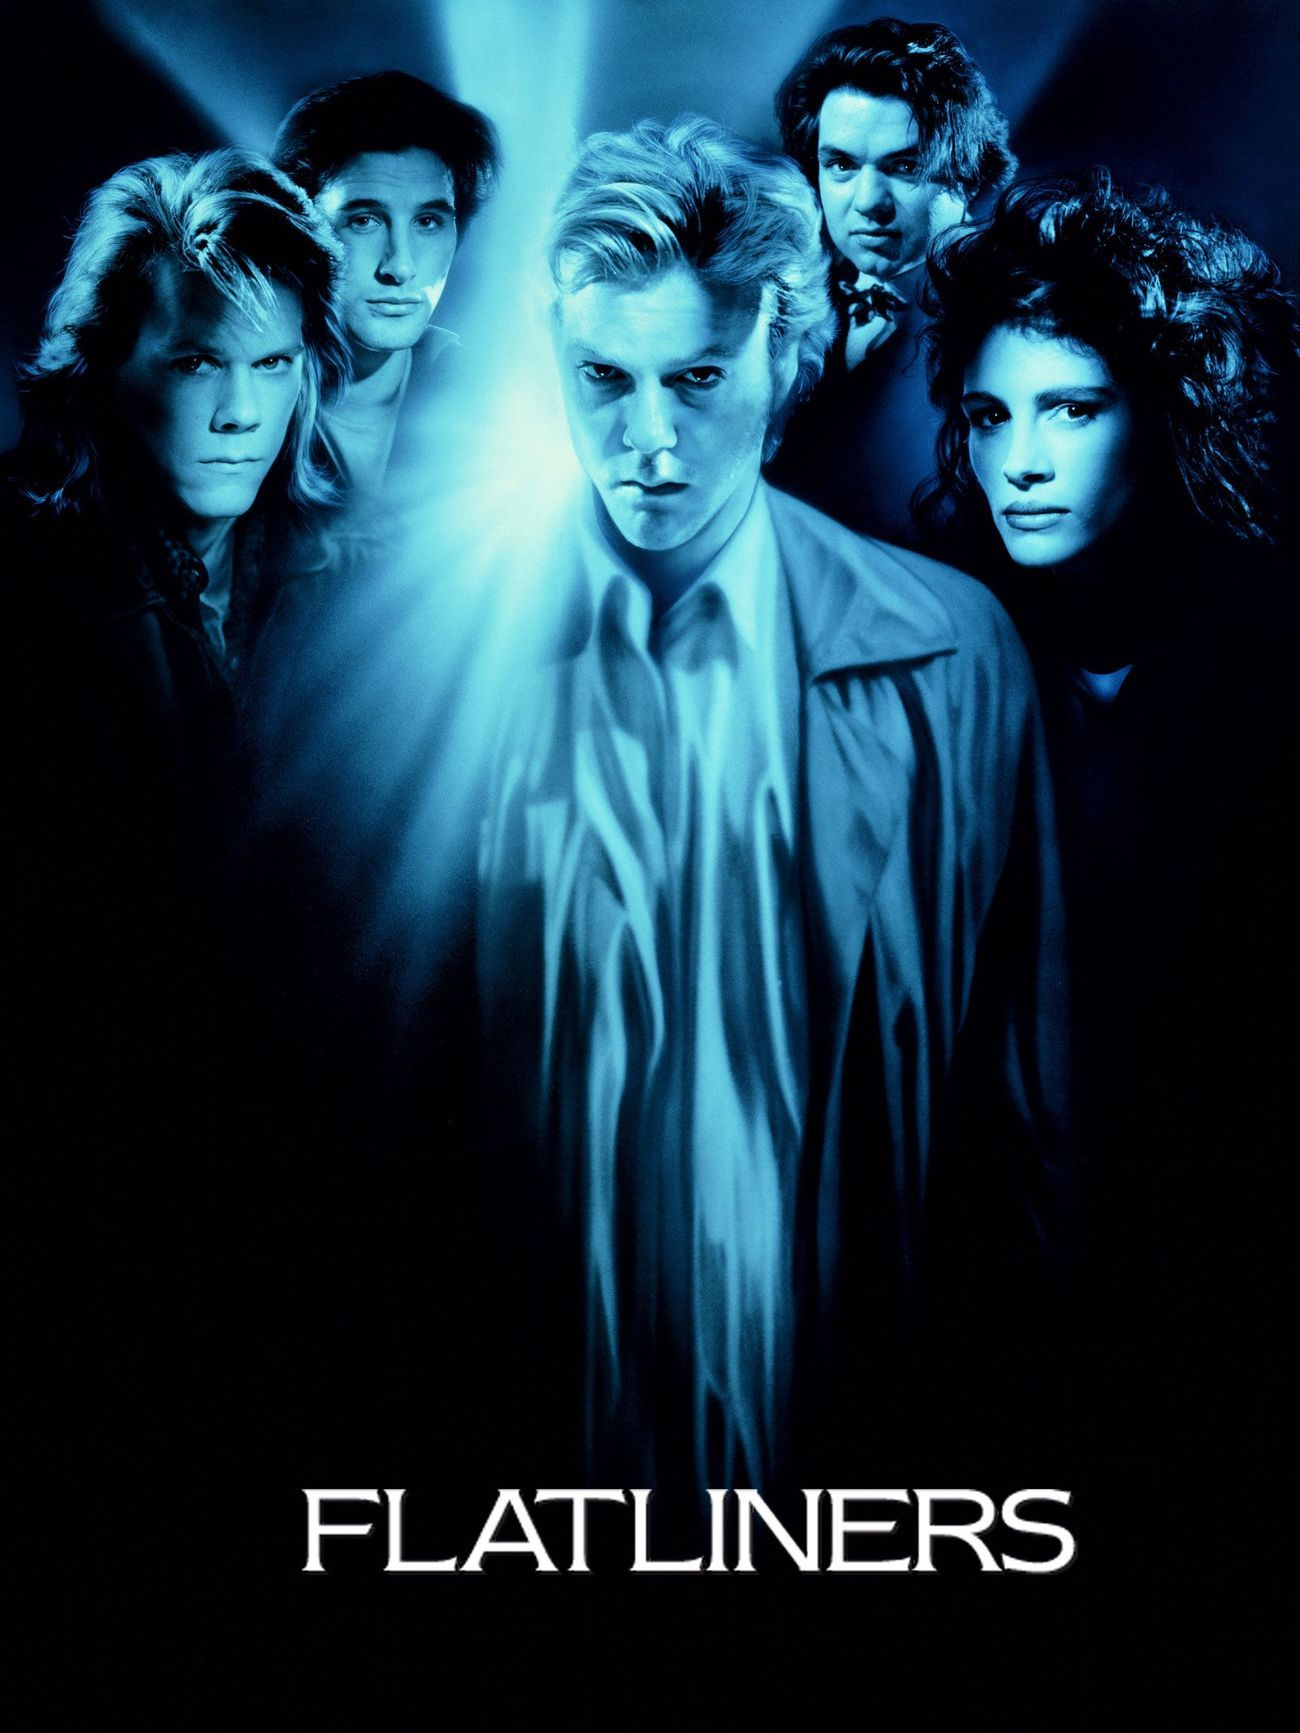 flatliners | watch and download flatliners free 1080 px | watch all